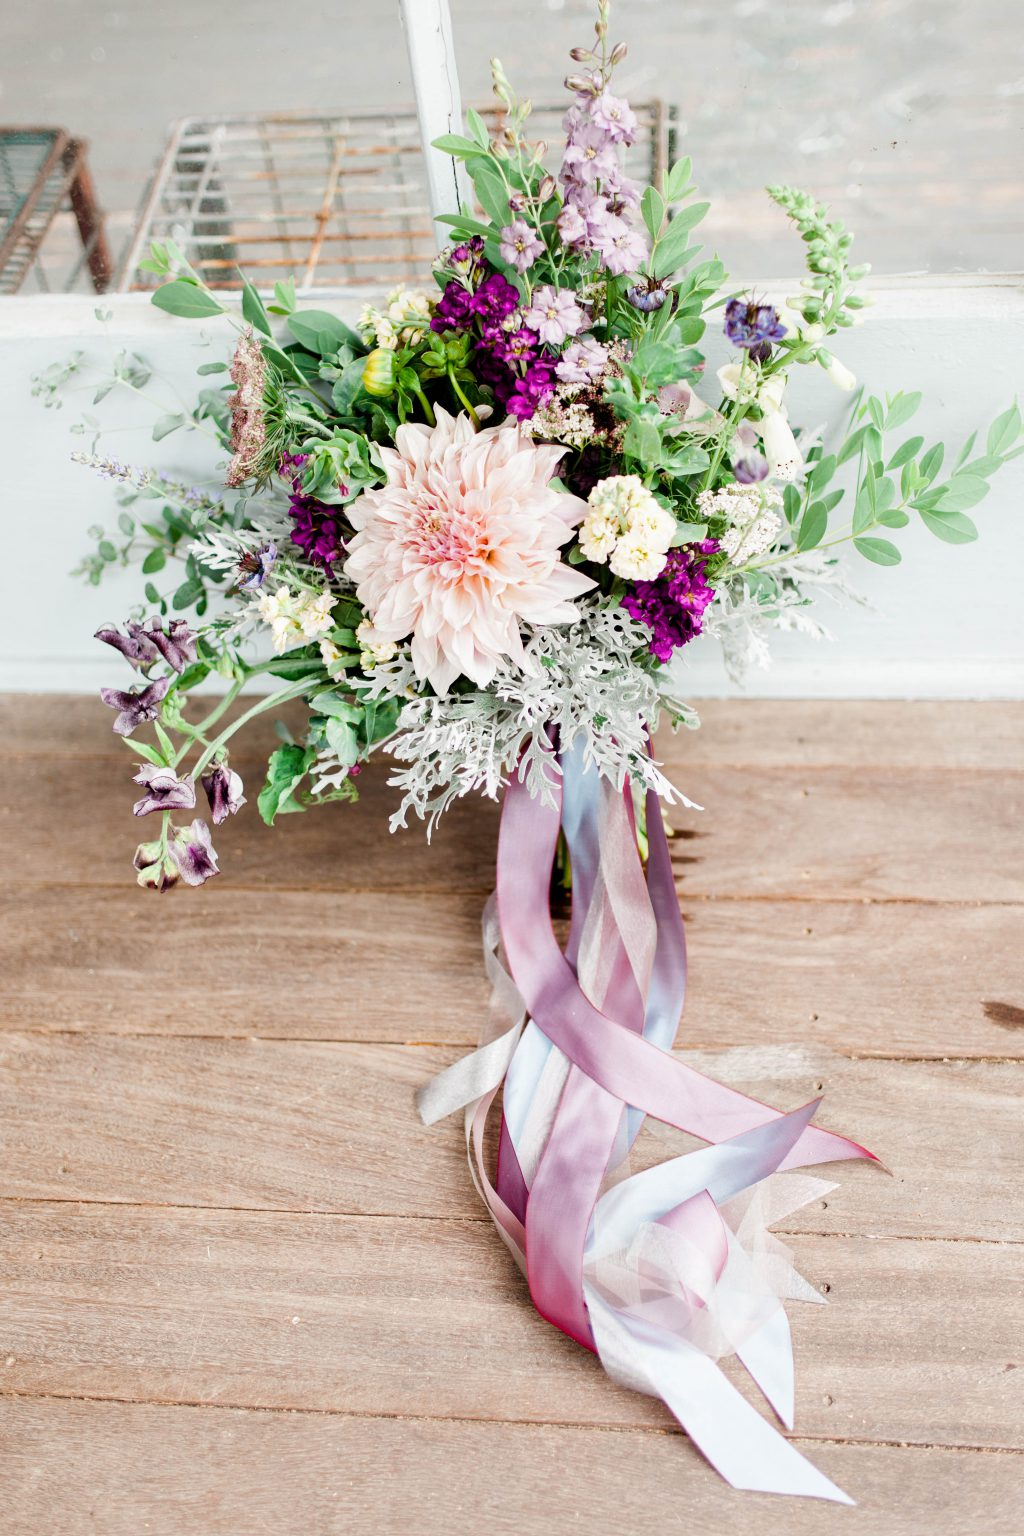 awbury-arboretum-wedding-DIY-boho-summer-haley-richter-photography-002